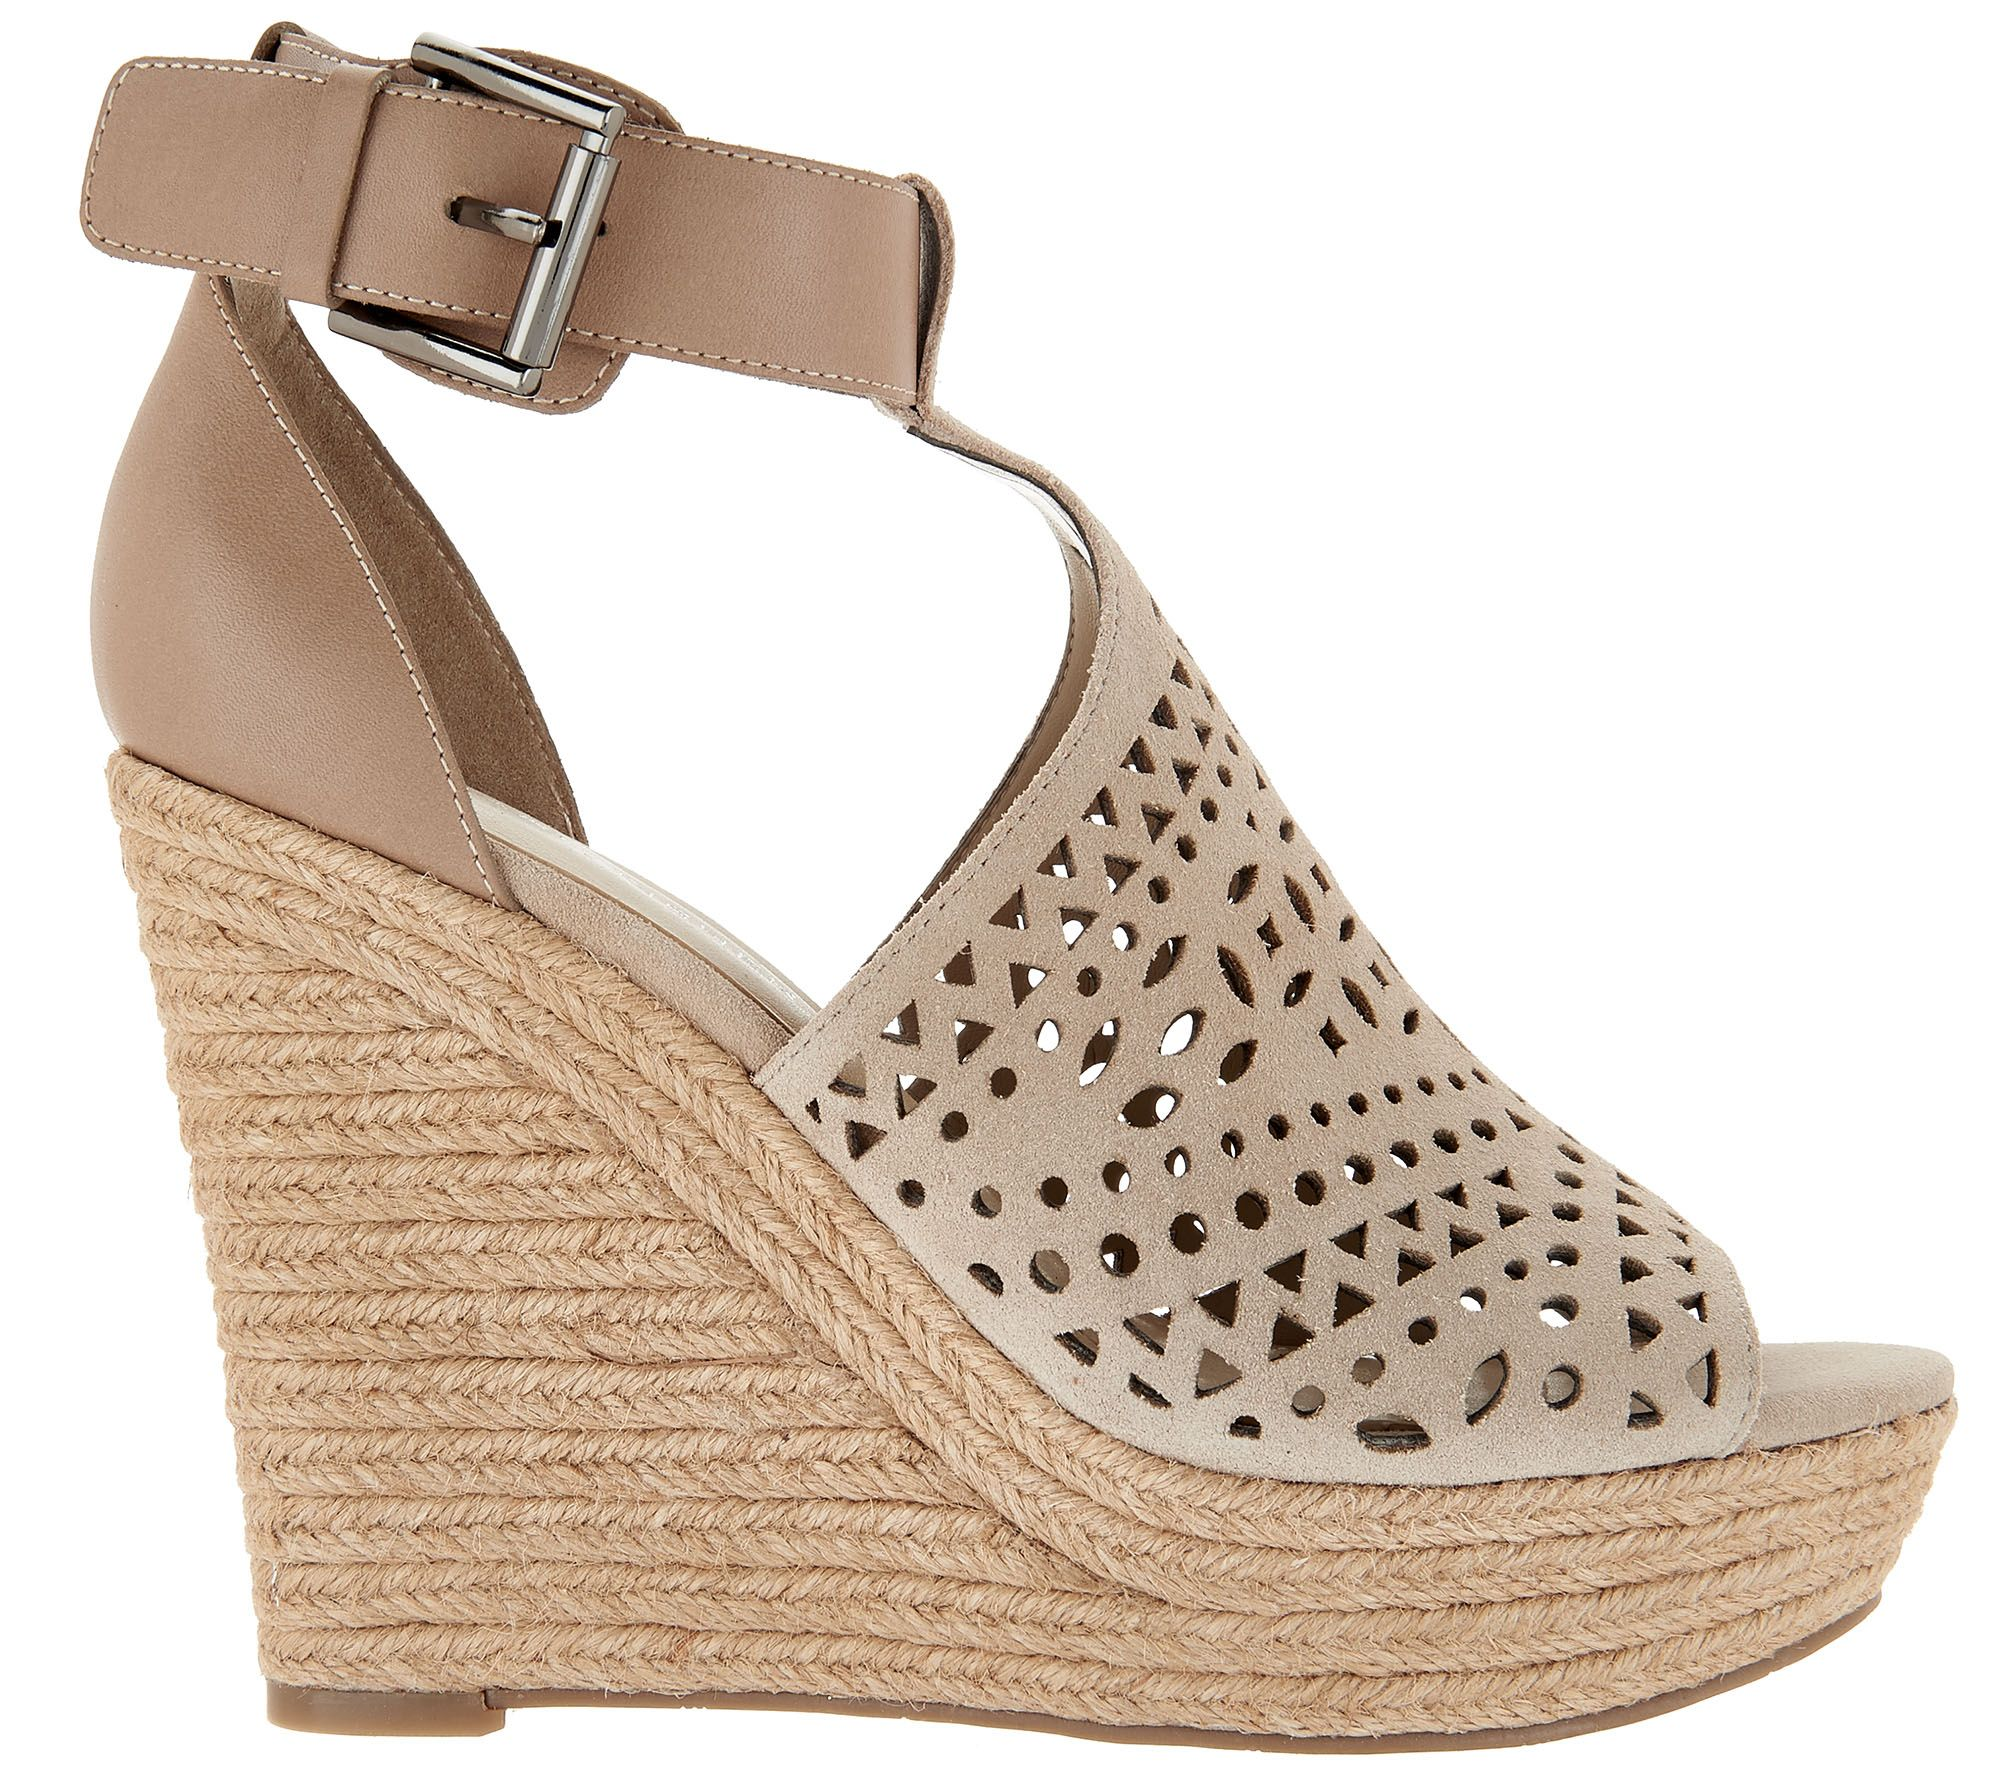 783004add2a0 Marc Fisher Perforated Suede Wedges -Hasina - Page 1 — QVC.com